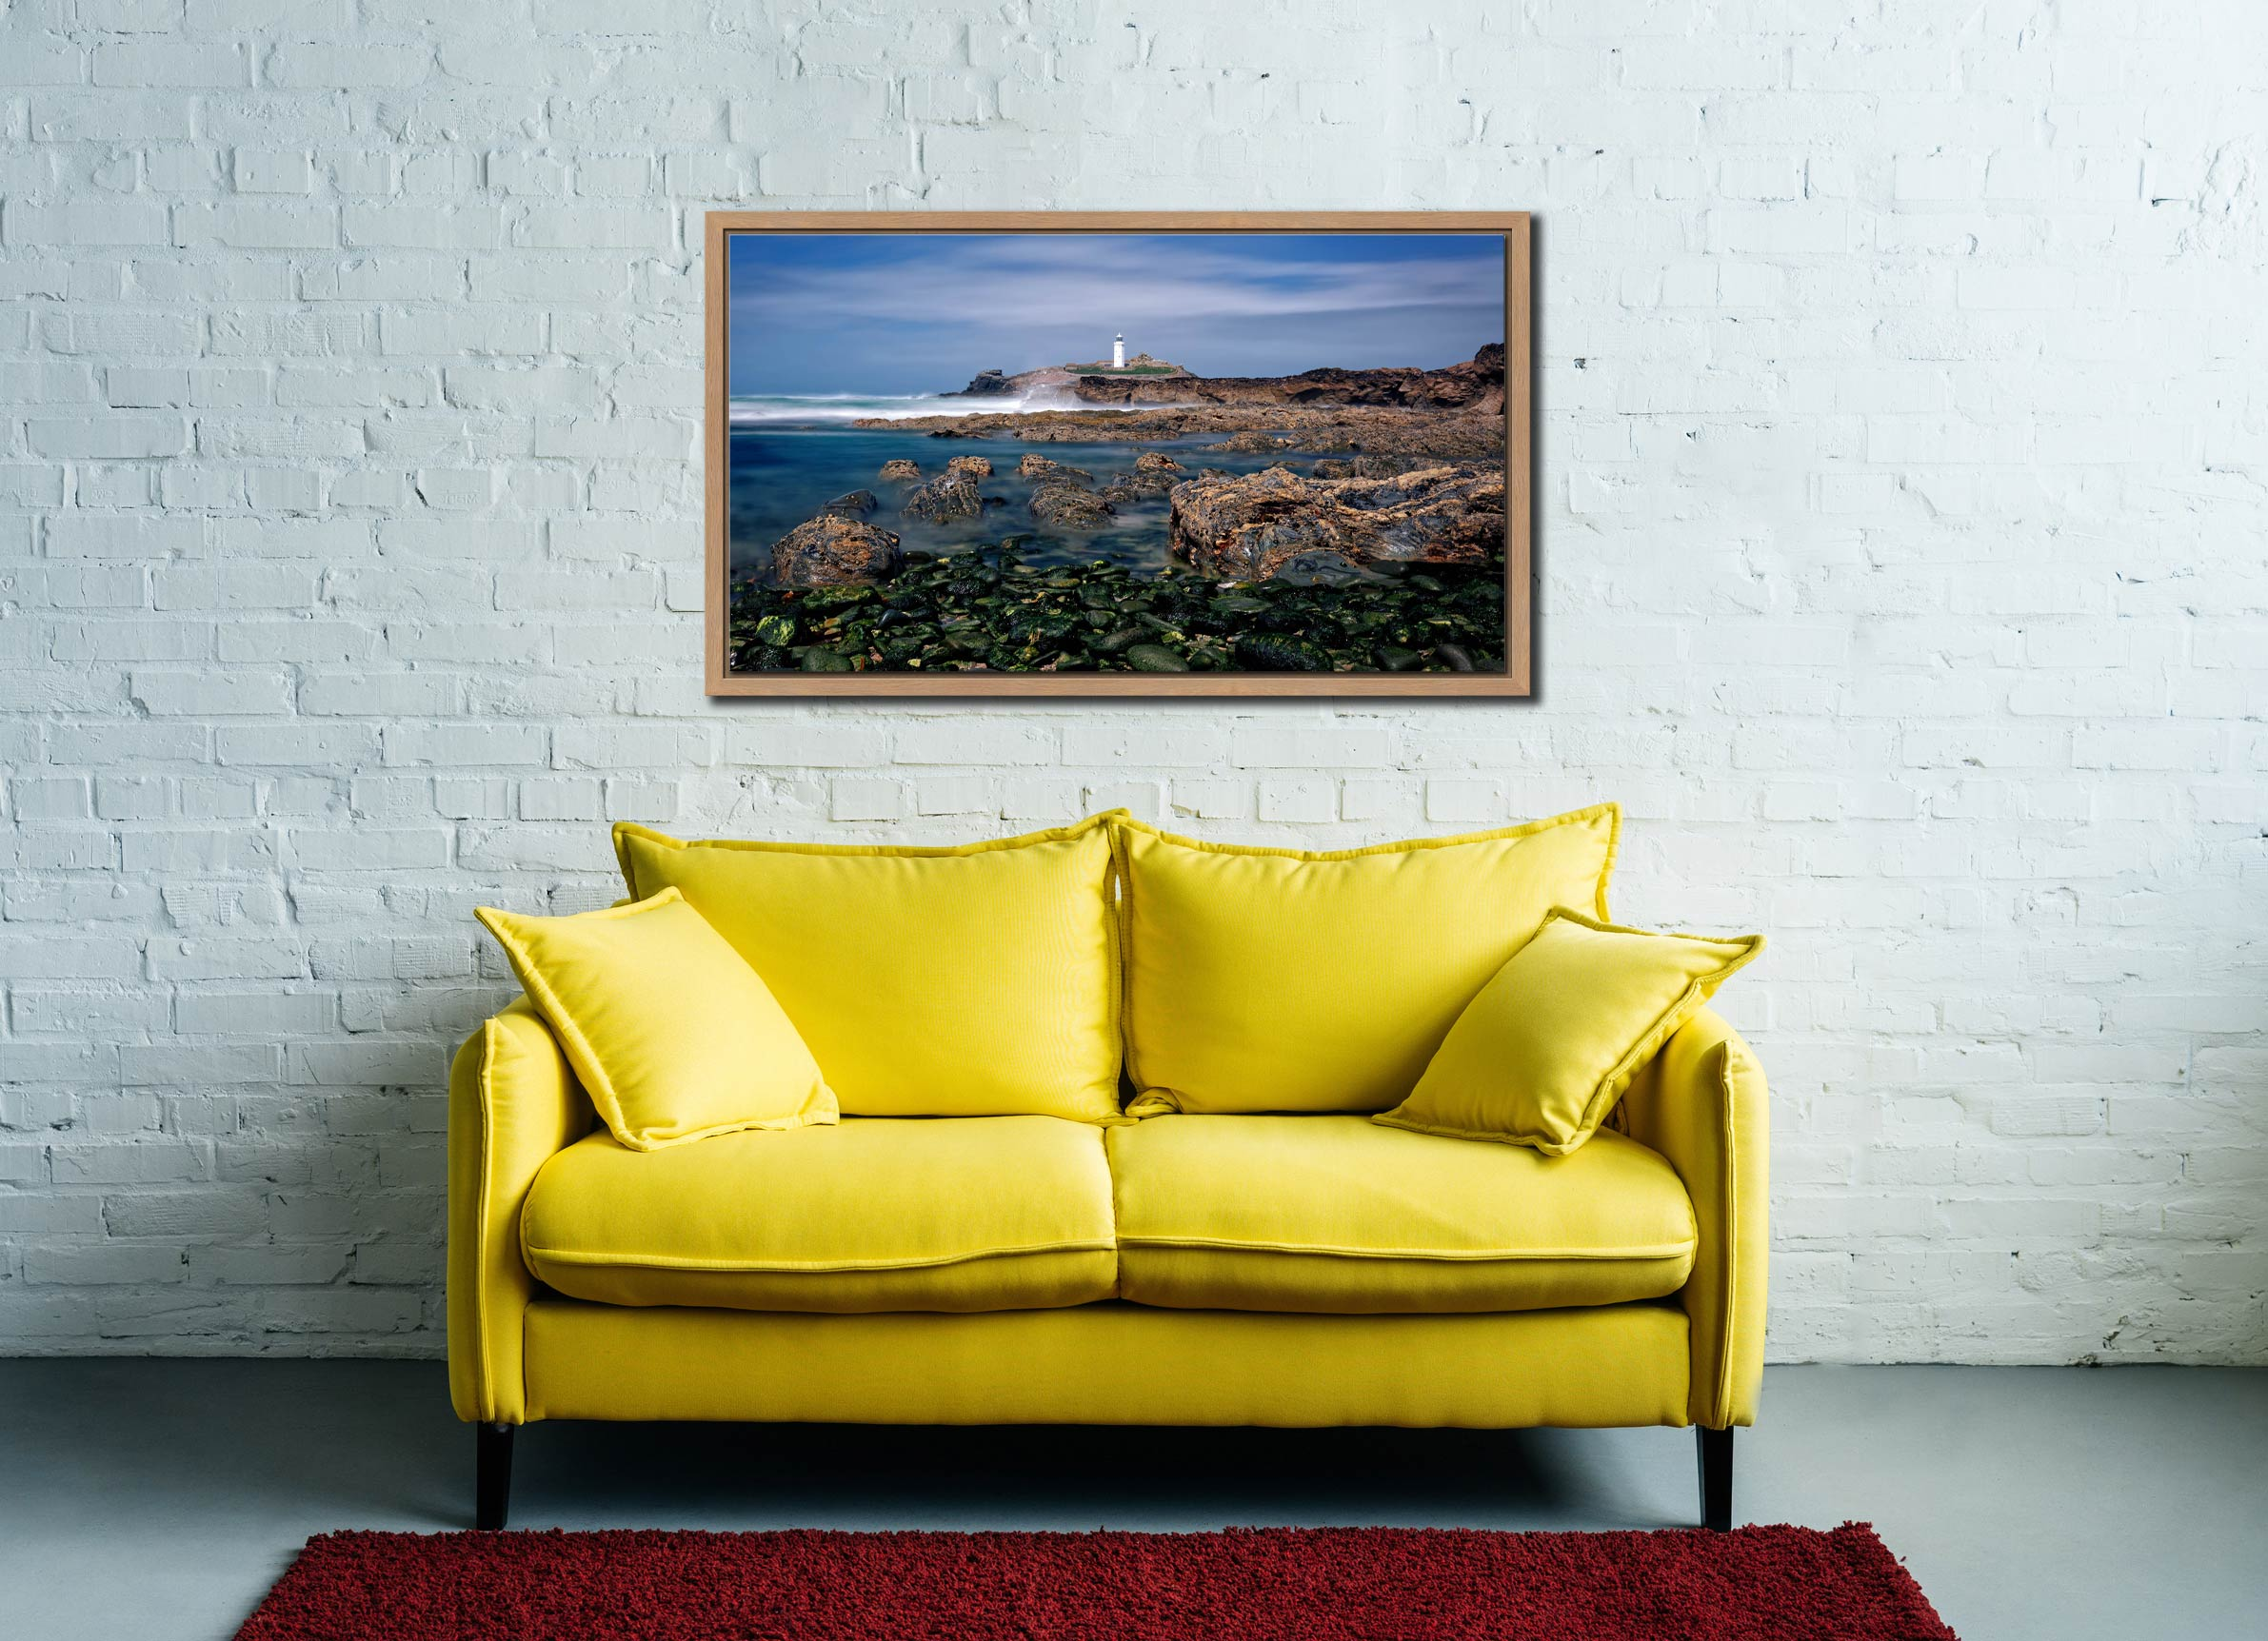 Godrevy Point Lighthouse and Rocks - Oak floater frame with acrylic glazing on Wall